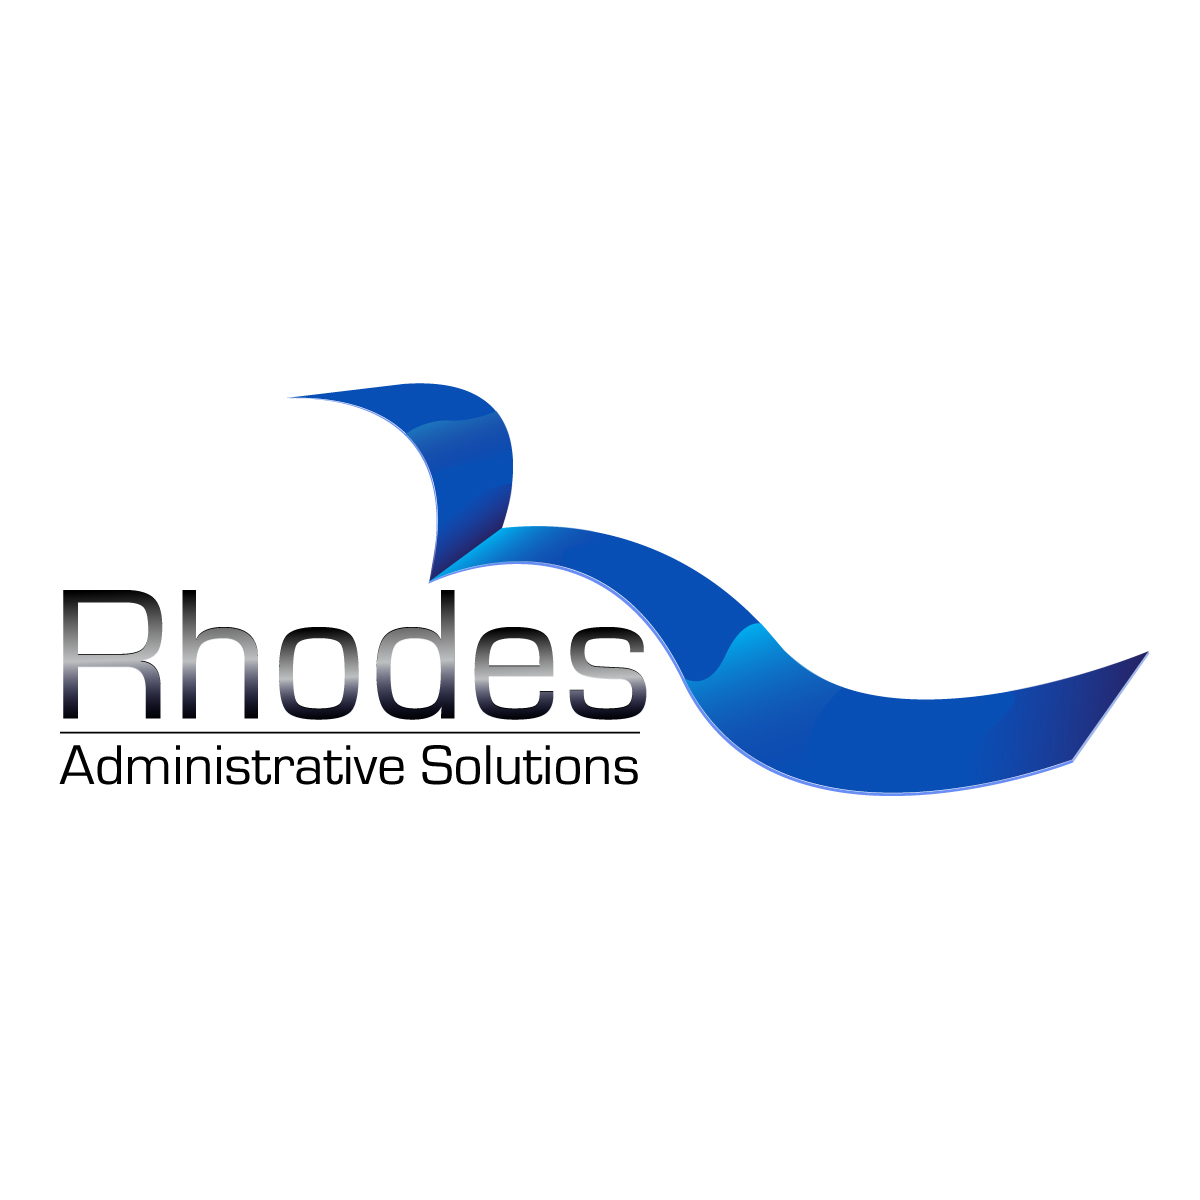 Logo Design by storm - Entry No. 79 in the Logo Design Contest Rhodes Administrative Solutions.